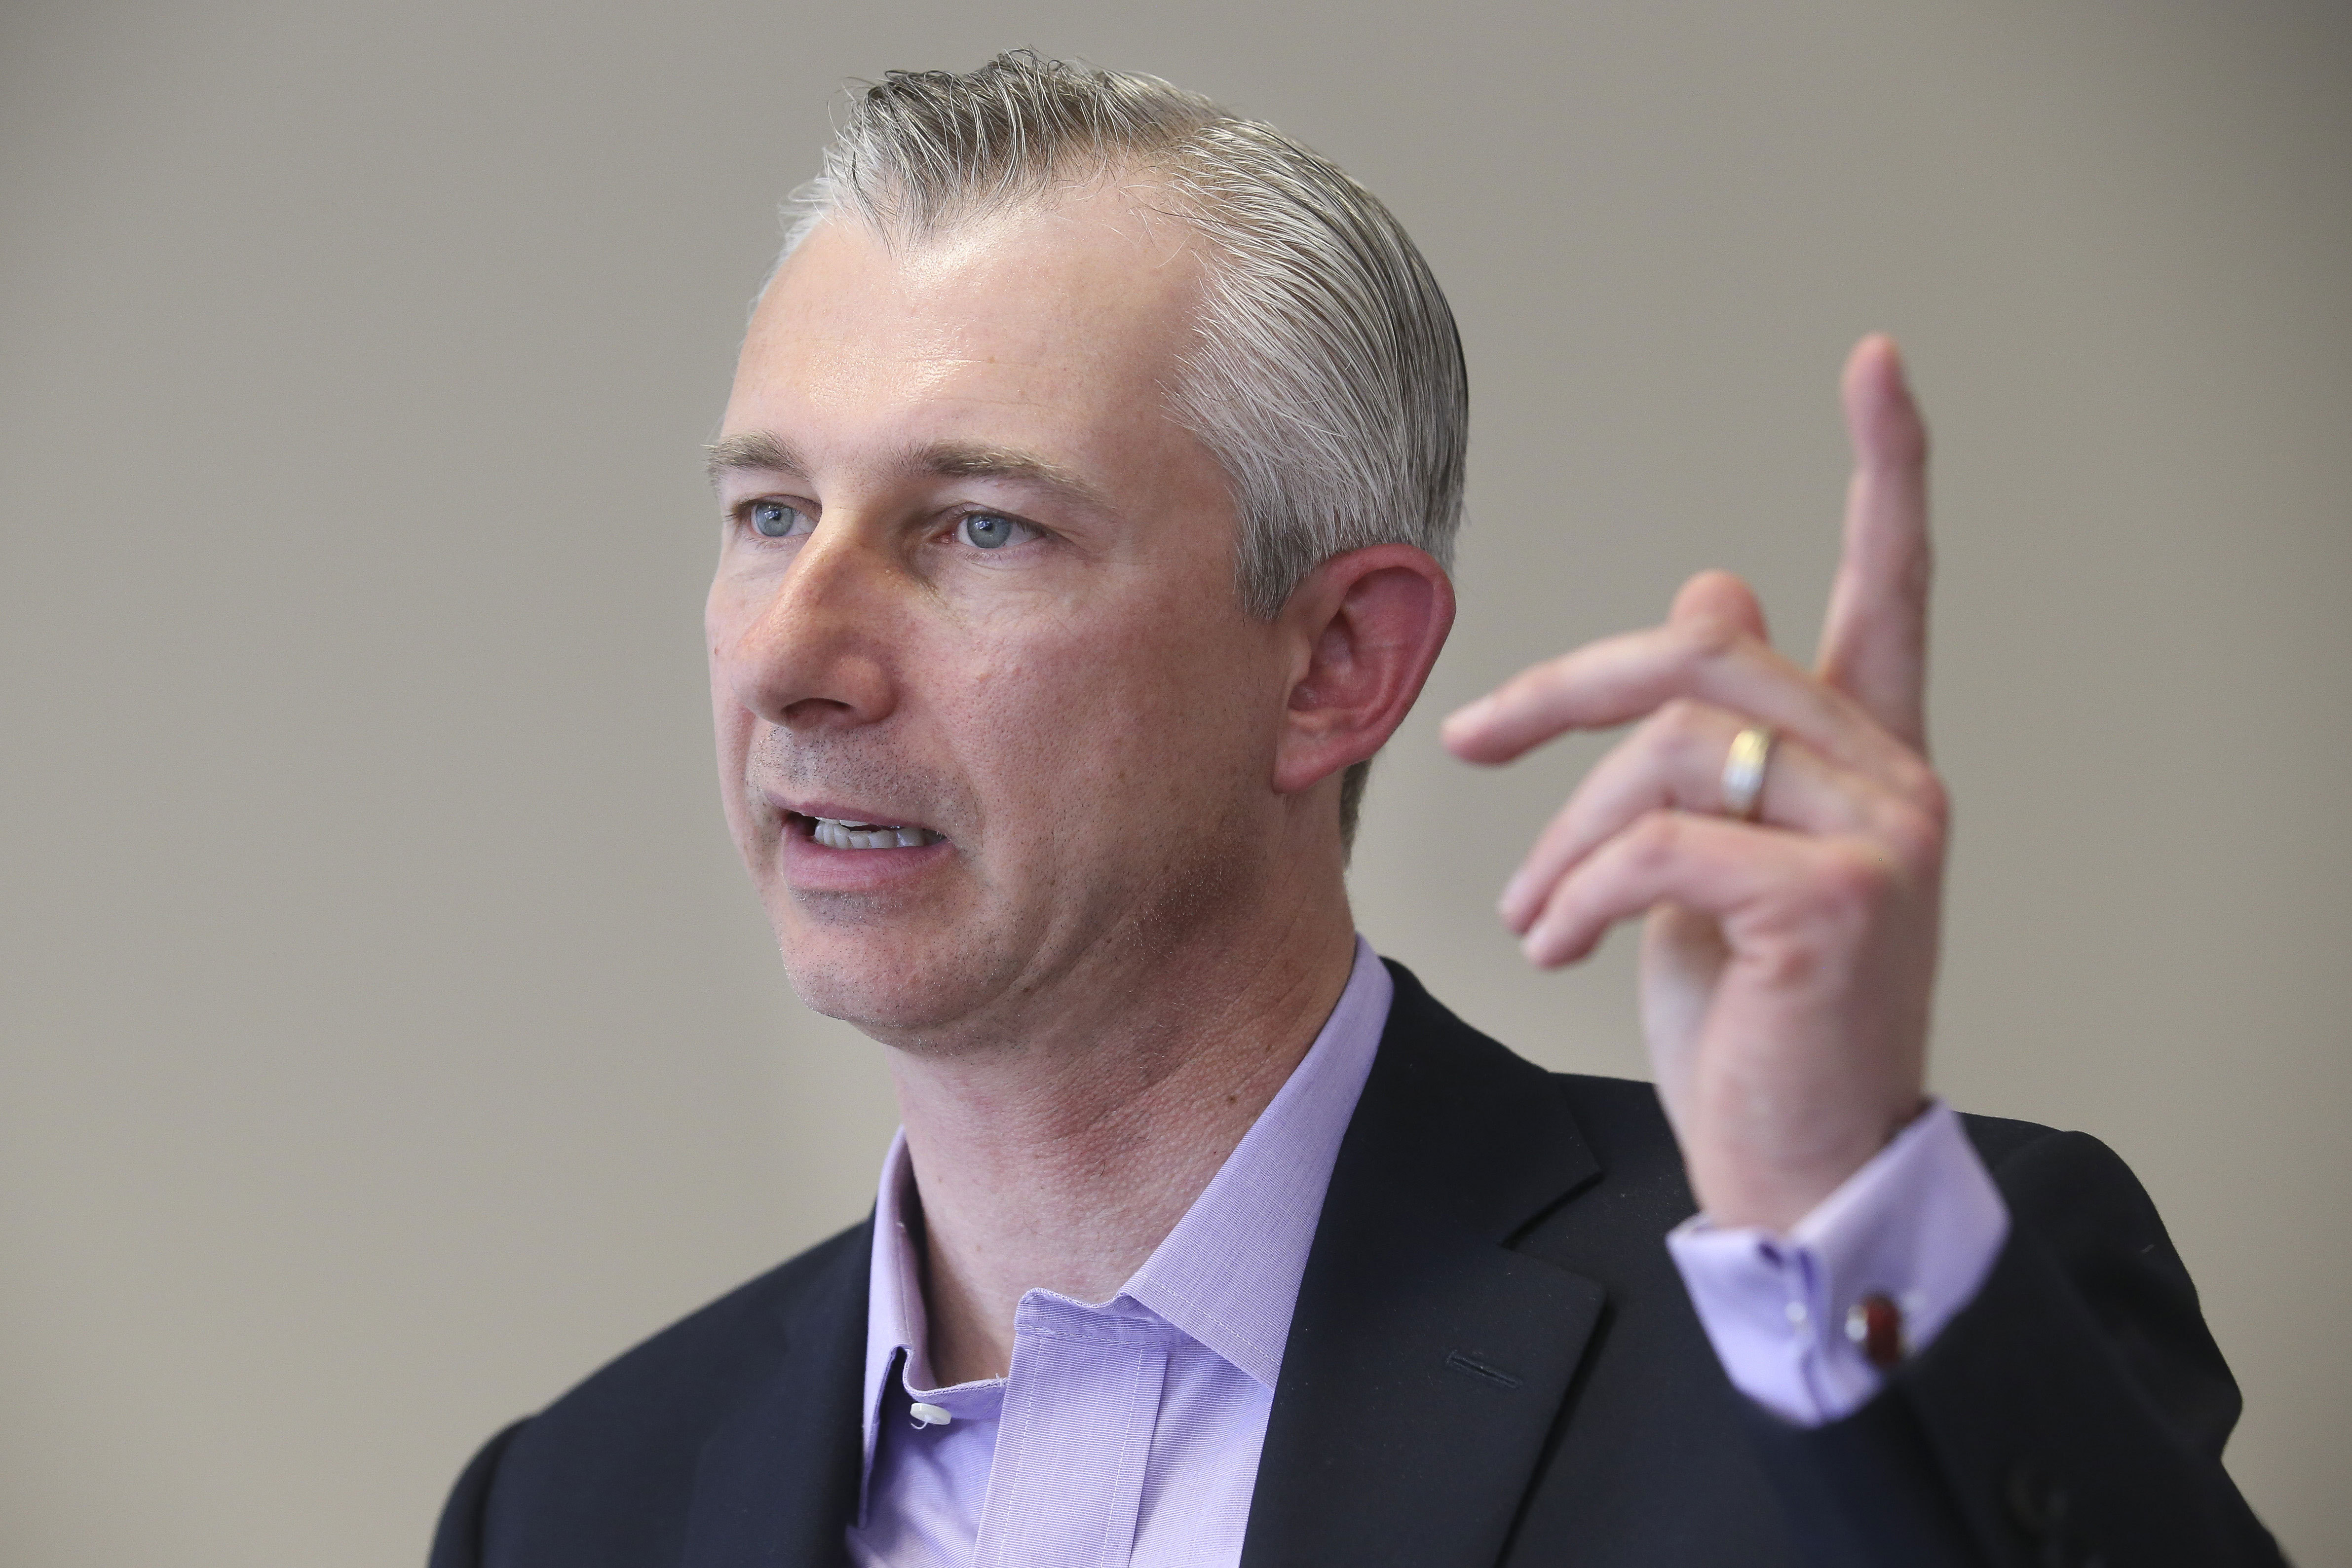 Staples' VP of Business Development Brian Coupland announces Staples Connect's expansion at event held at the Lutron Global Specification Office in New York. (Photo: Business Wire)